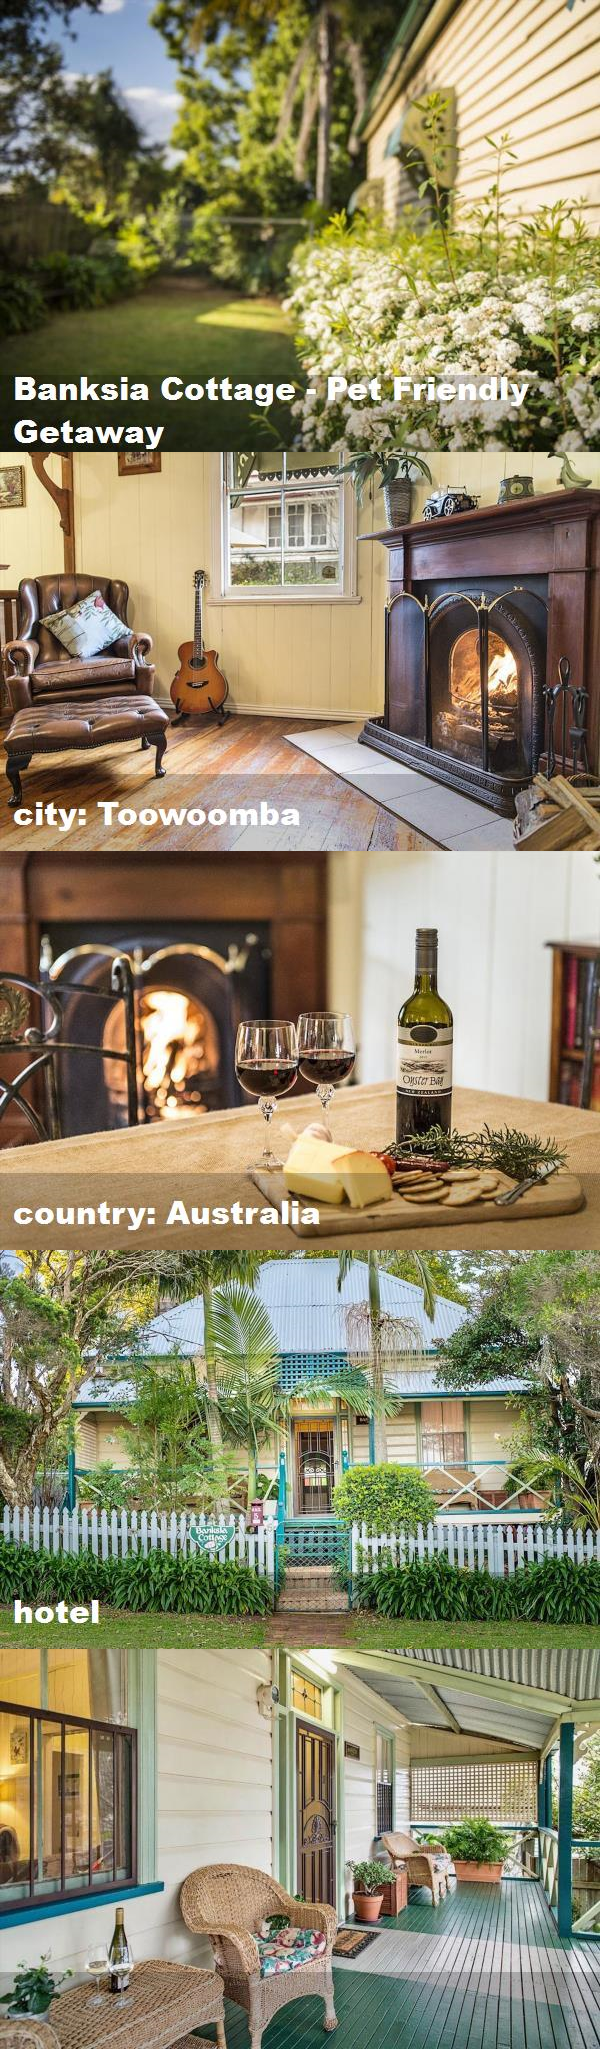 Banksia Cottage Pet Friendly Getaway, city Toowoomba